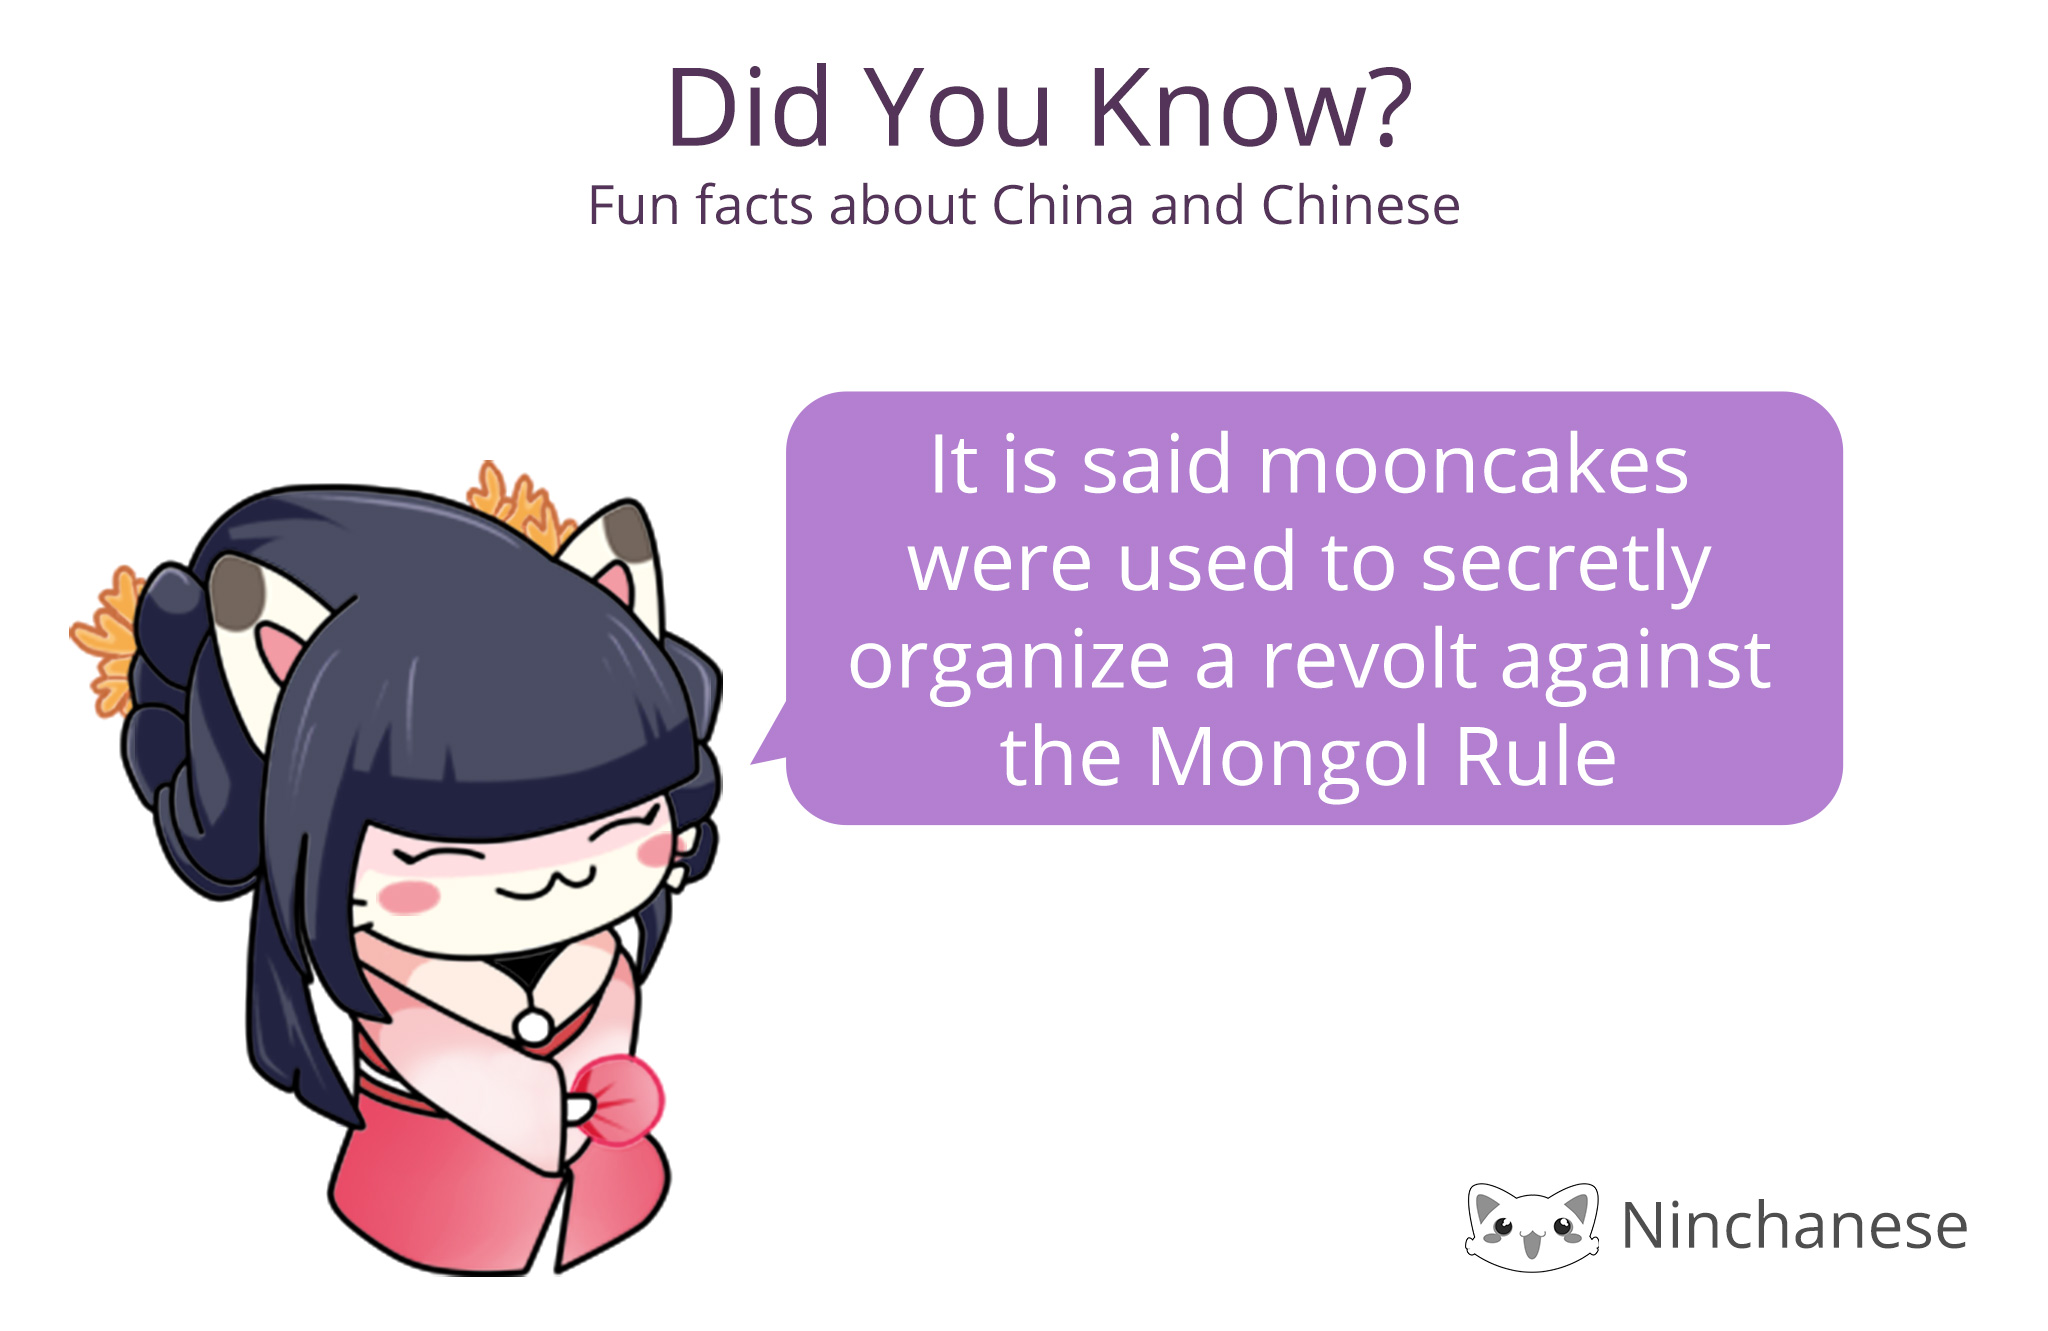 A fun mooncake folktale in honor of the Mid-autumn festival: mooncakes were secretly used to overthrow the Mongol Rule it seems